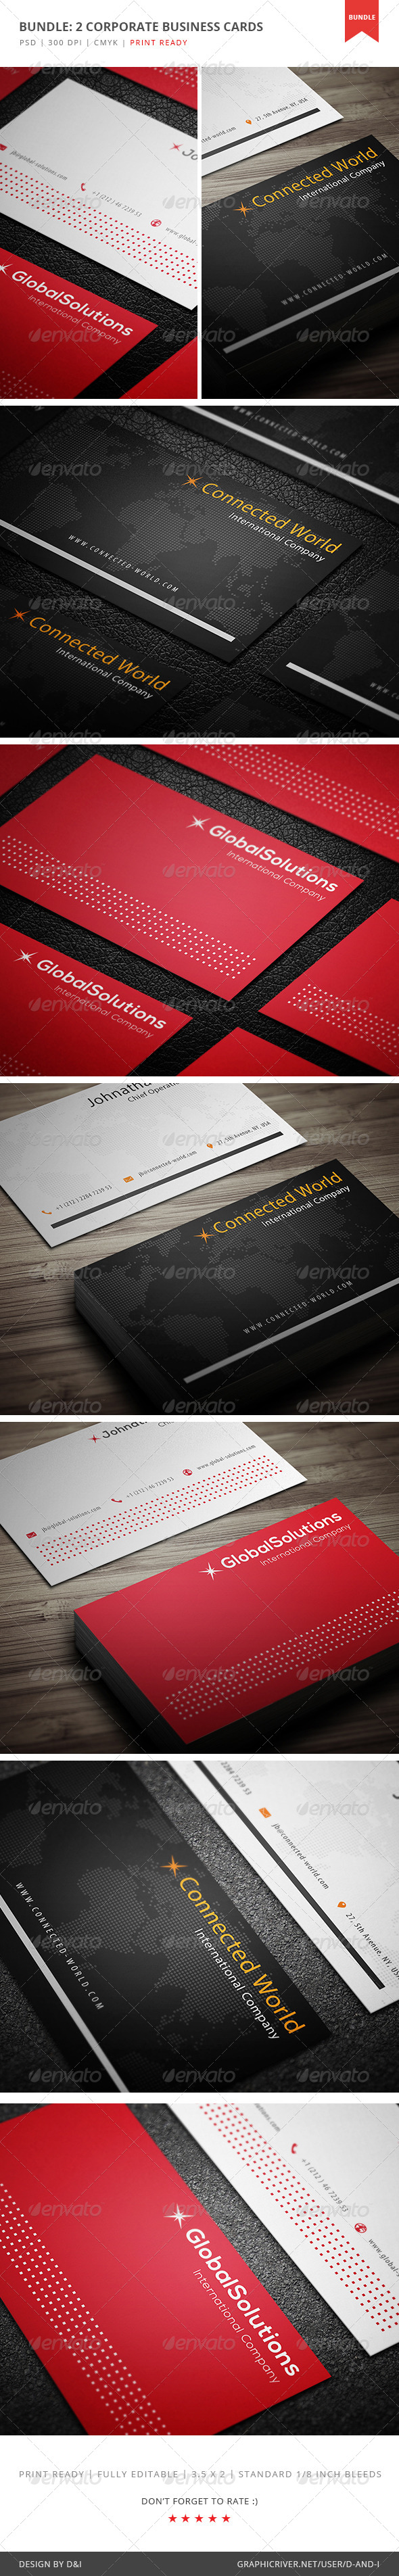 GraphicRiver Bundle 2 Corporate Business Cards by D&I 5383147